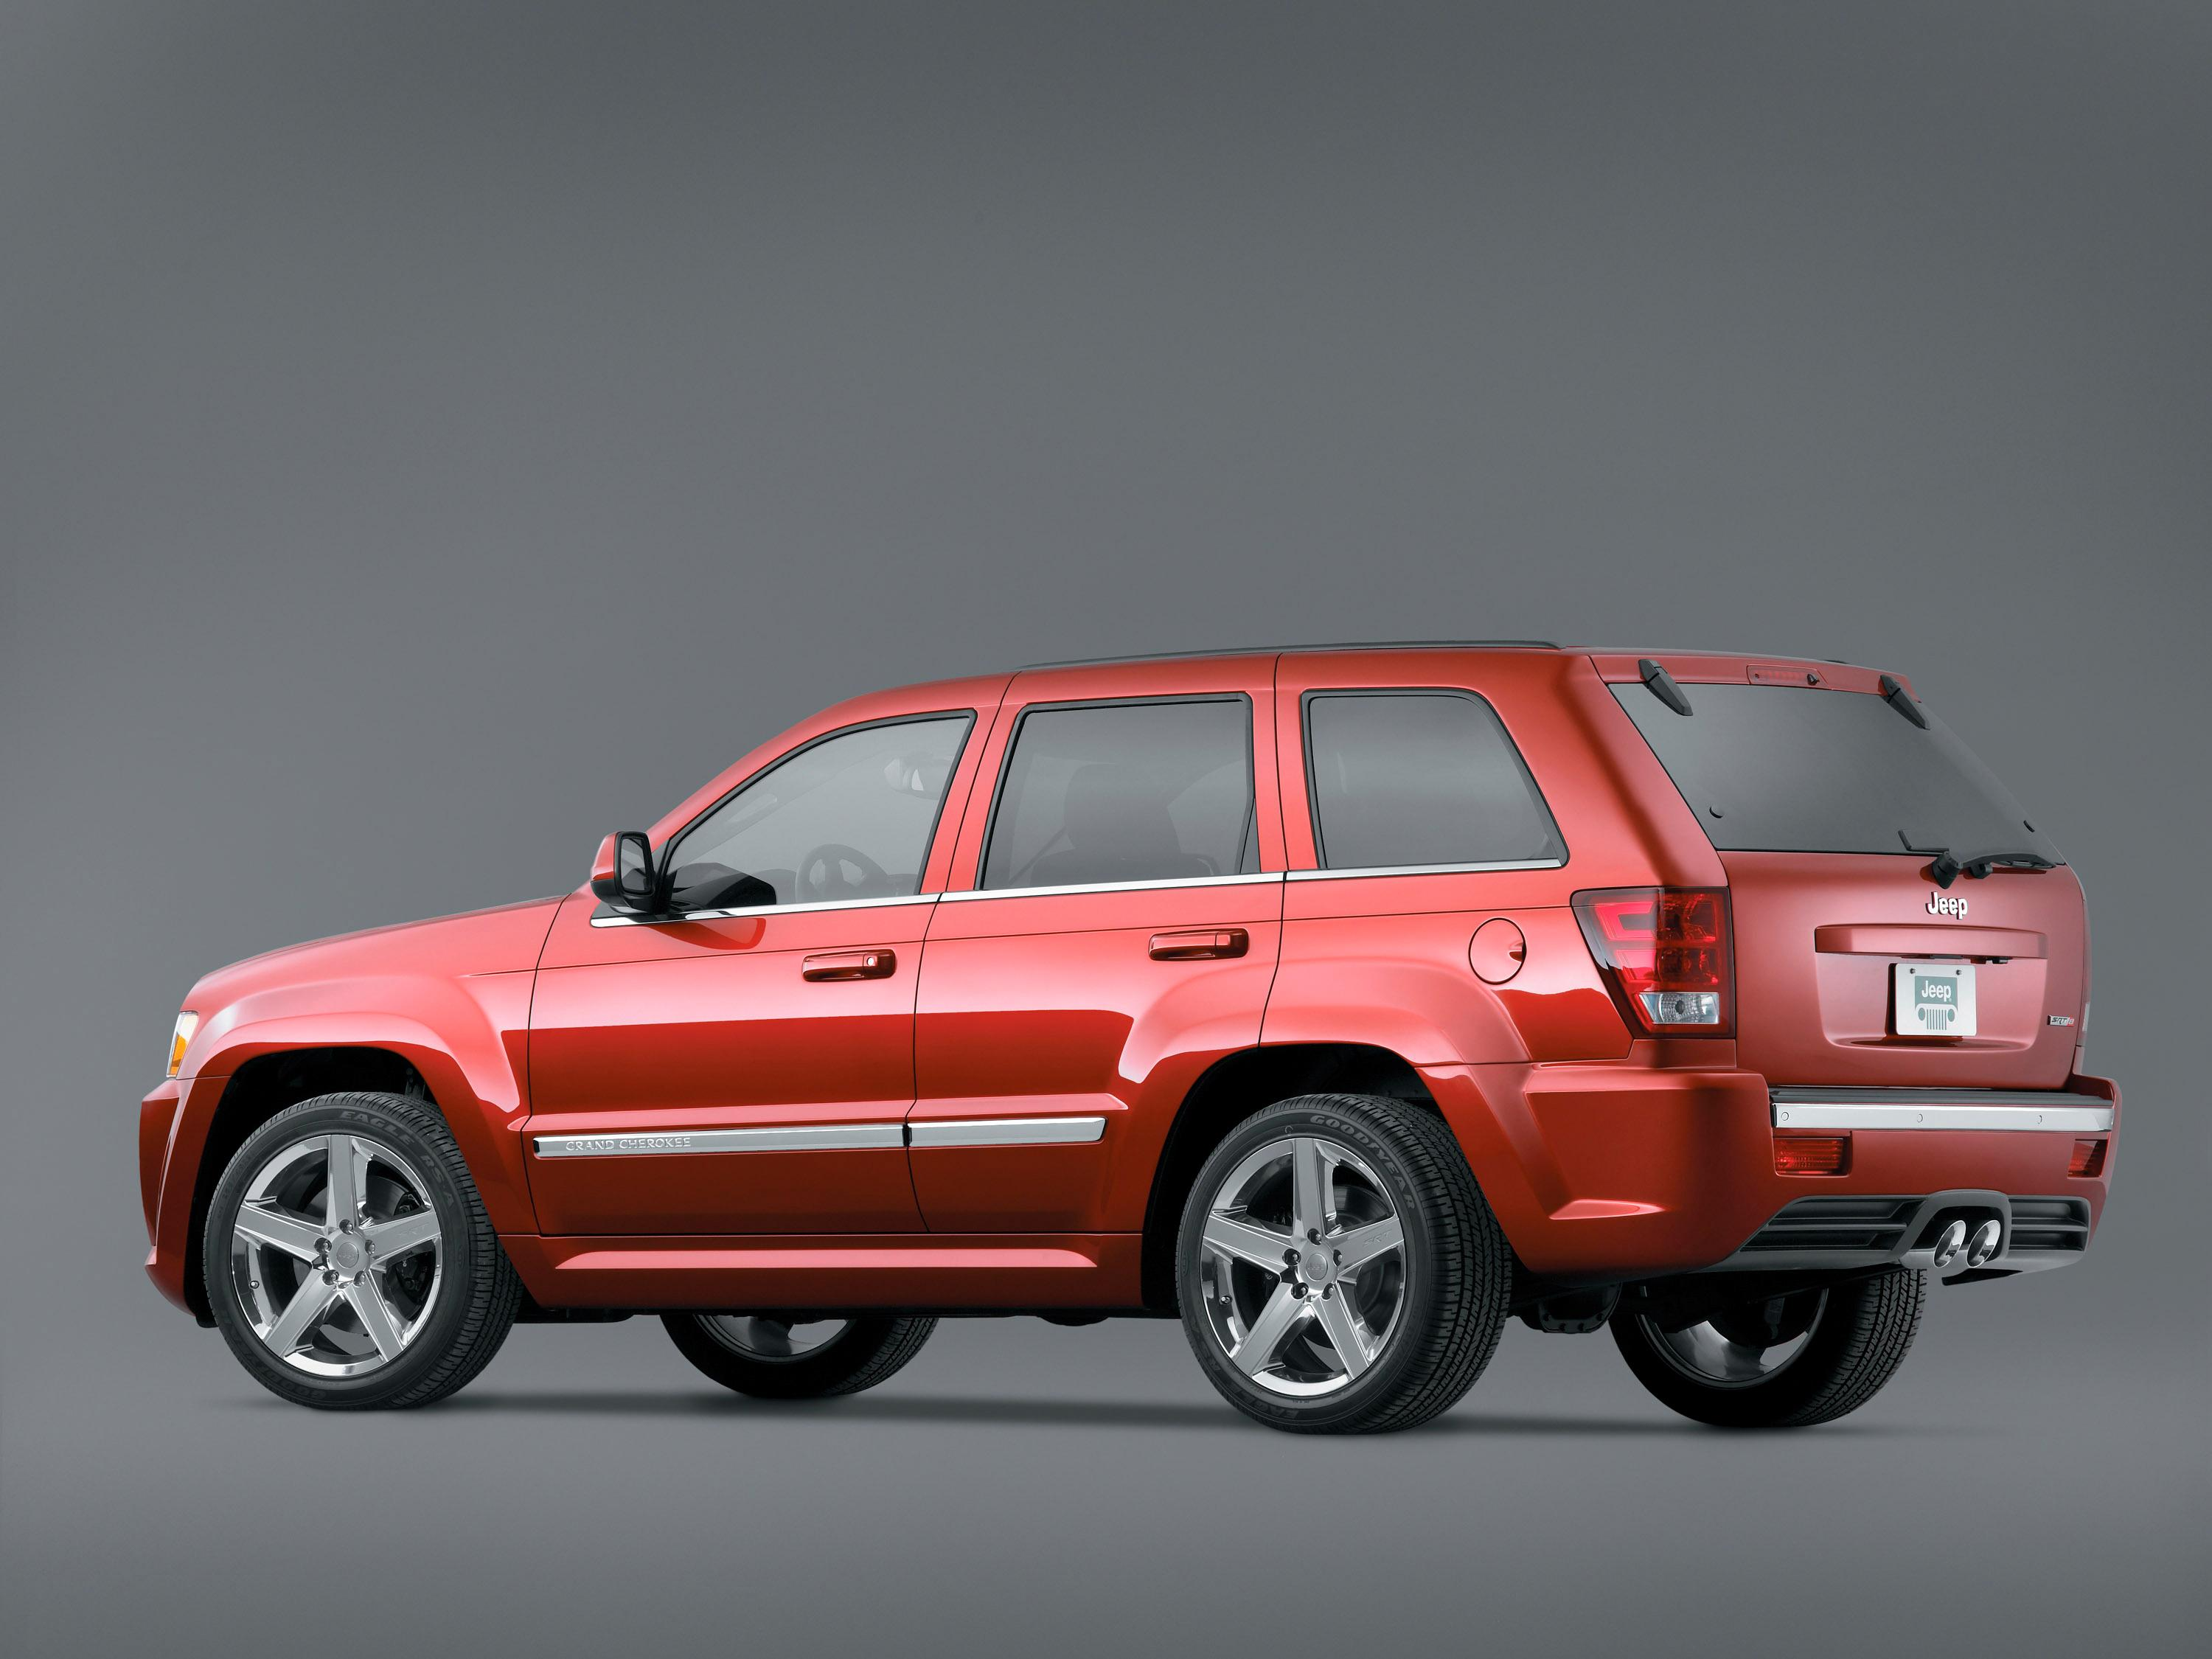 2007 Jeep Grand Cherokee SRT8 | Top Speed. »